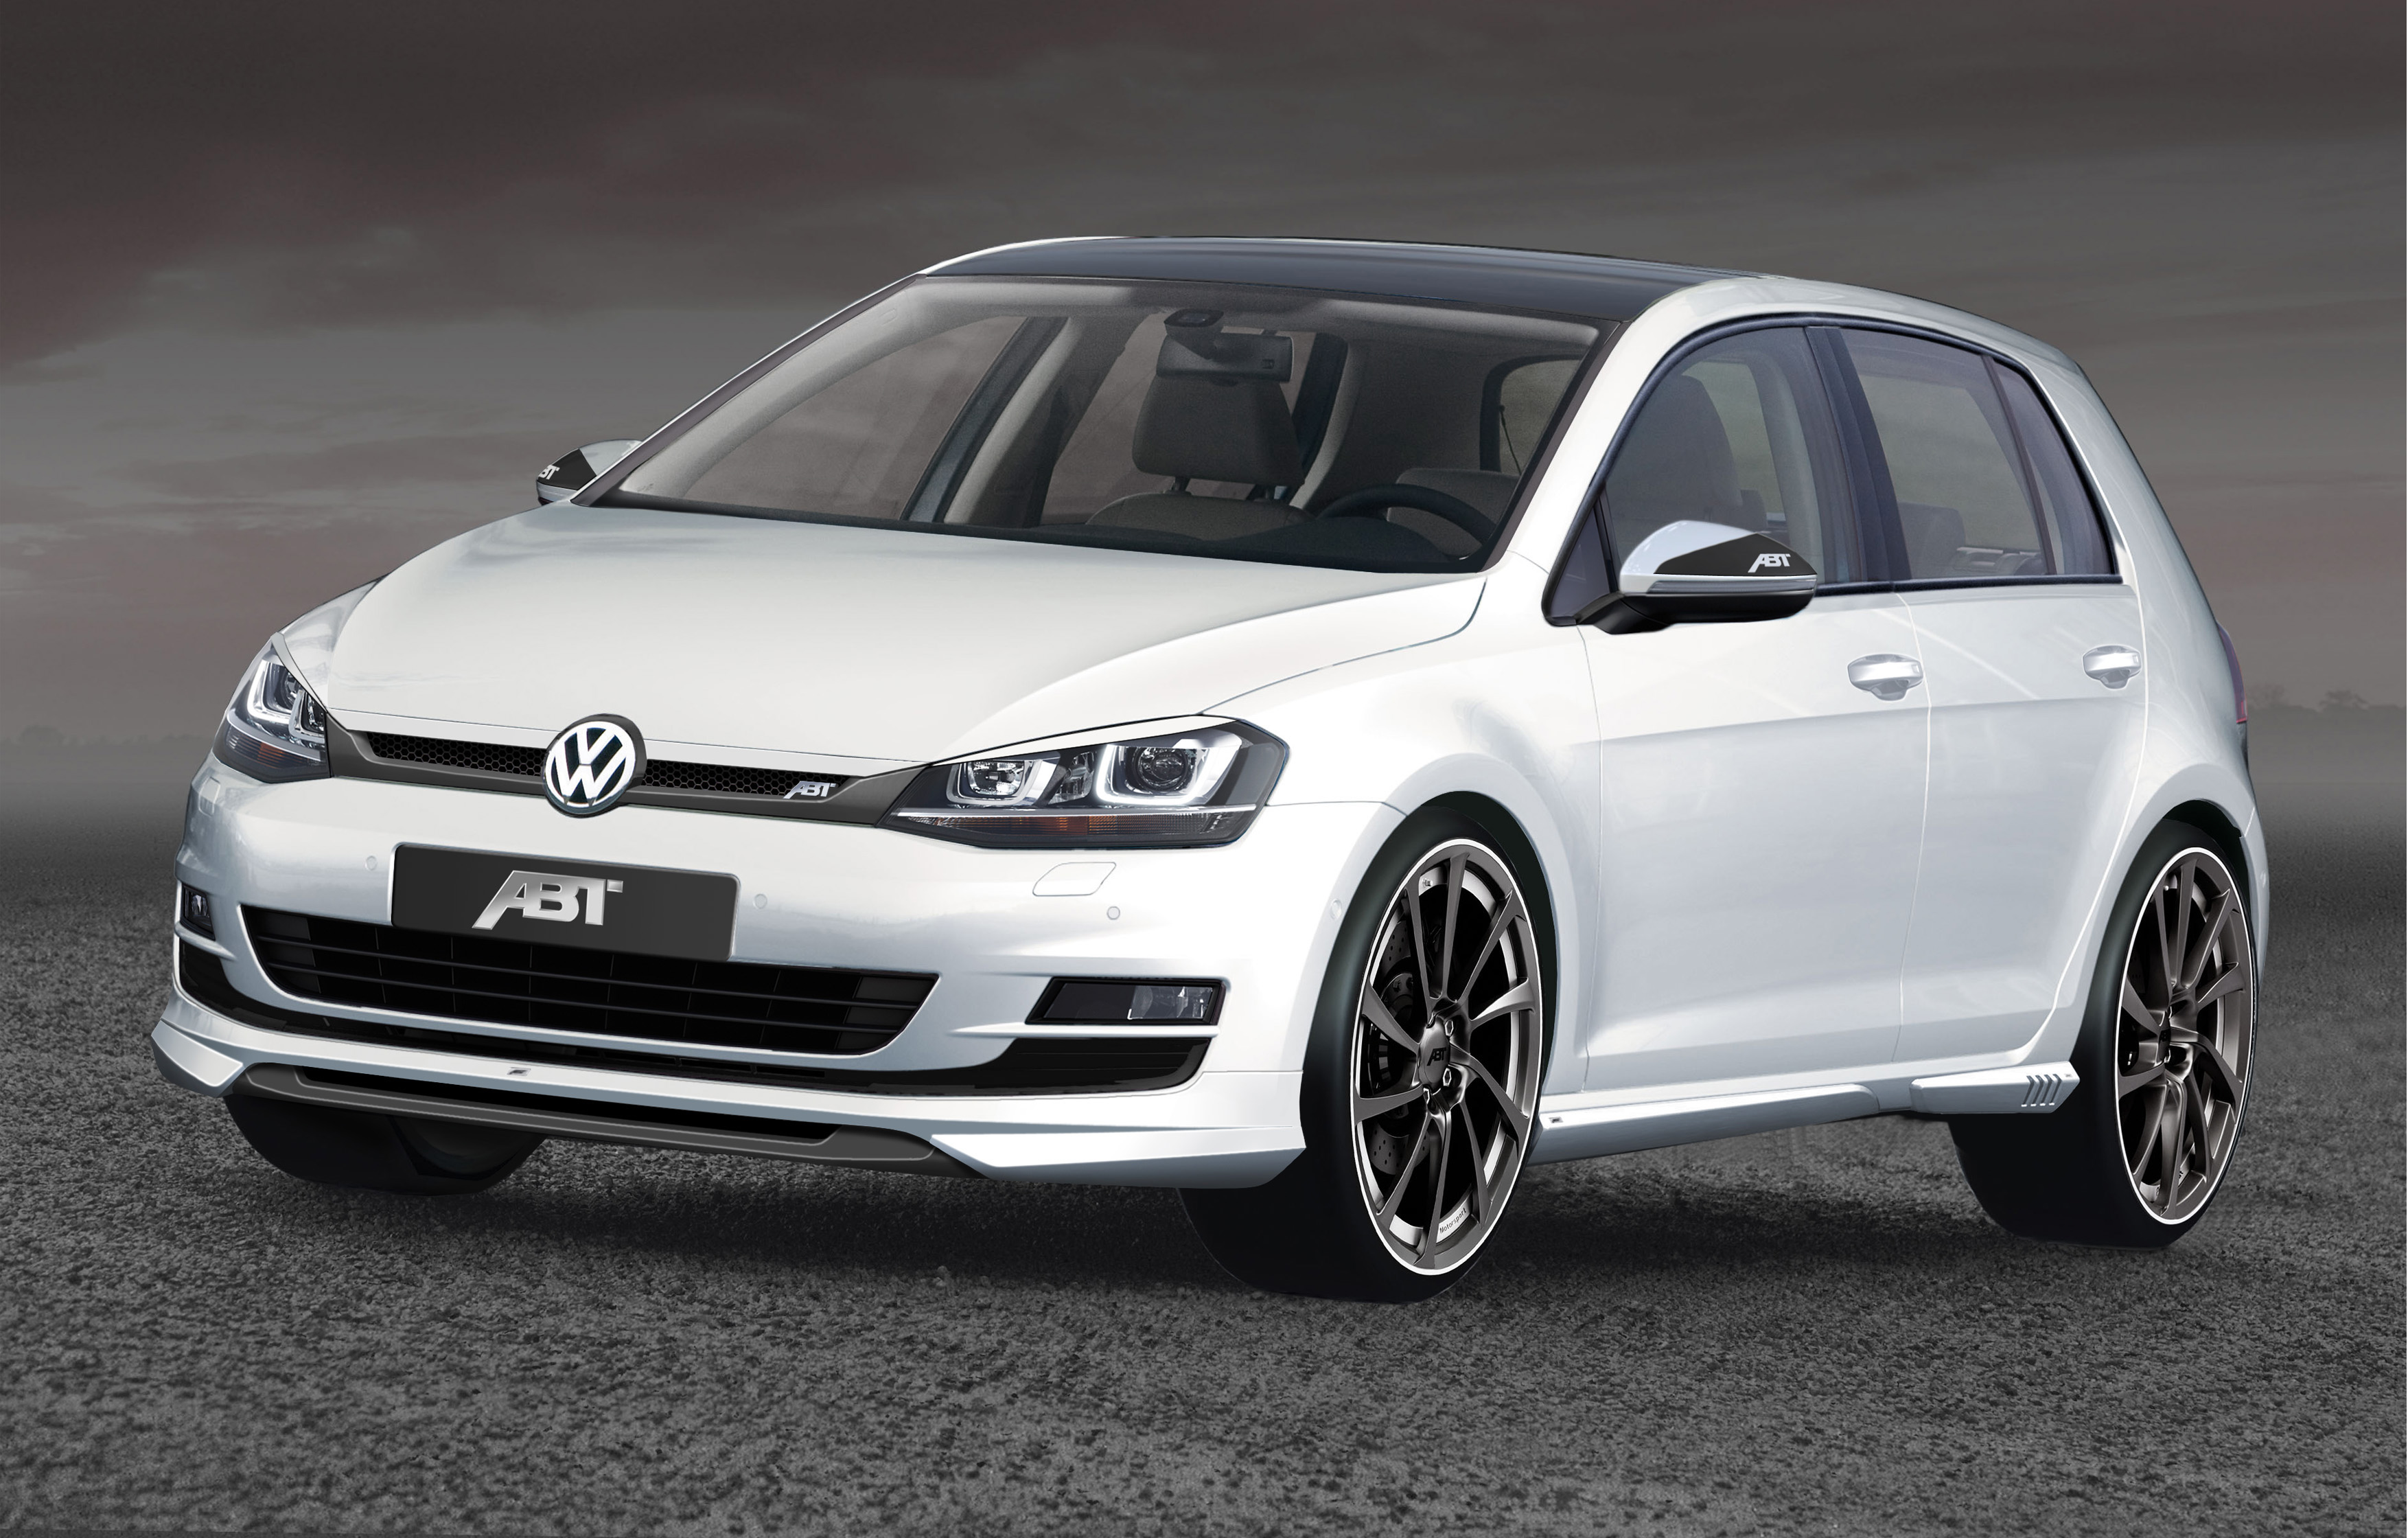 ABT GolfVII Front 110x60